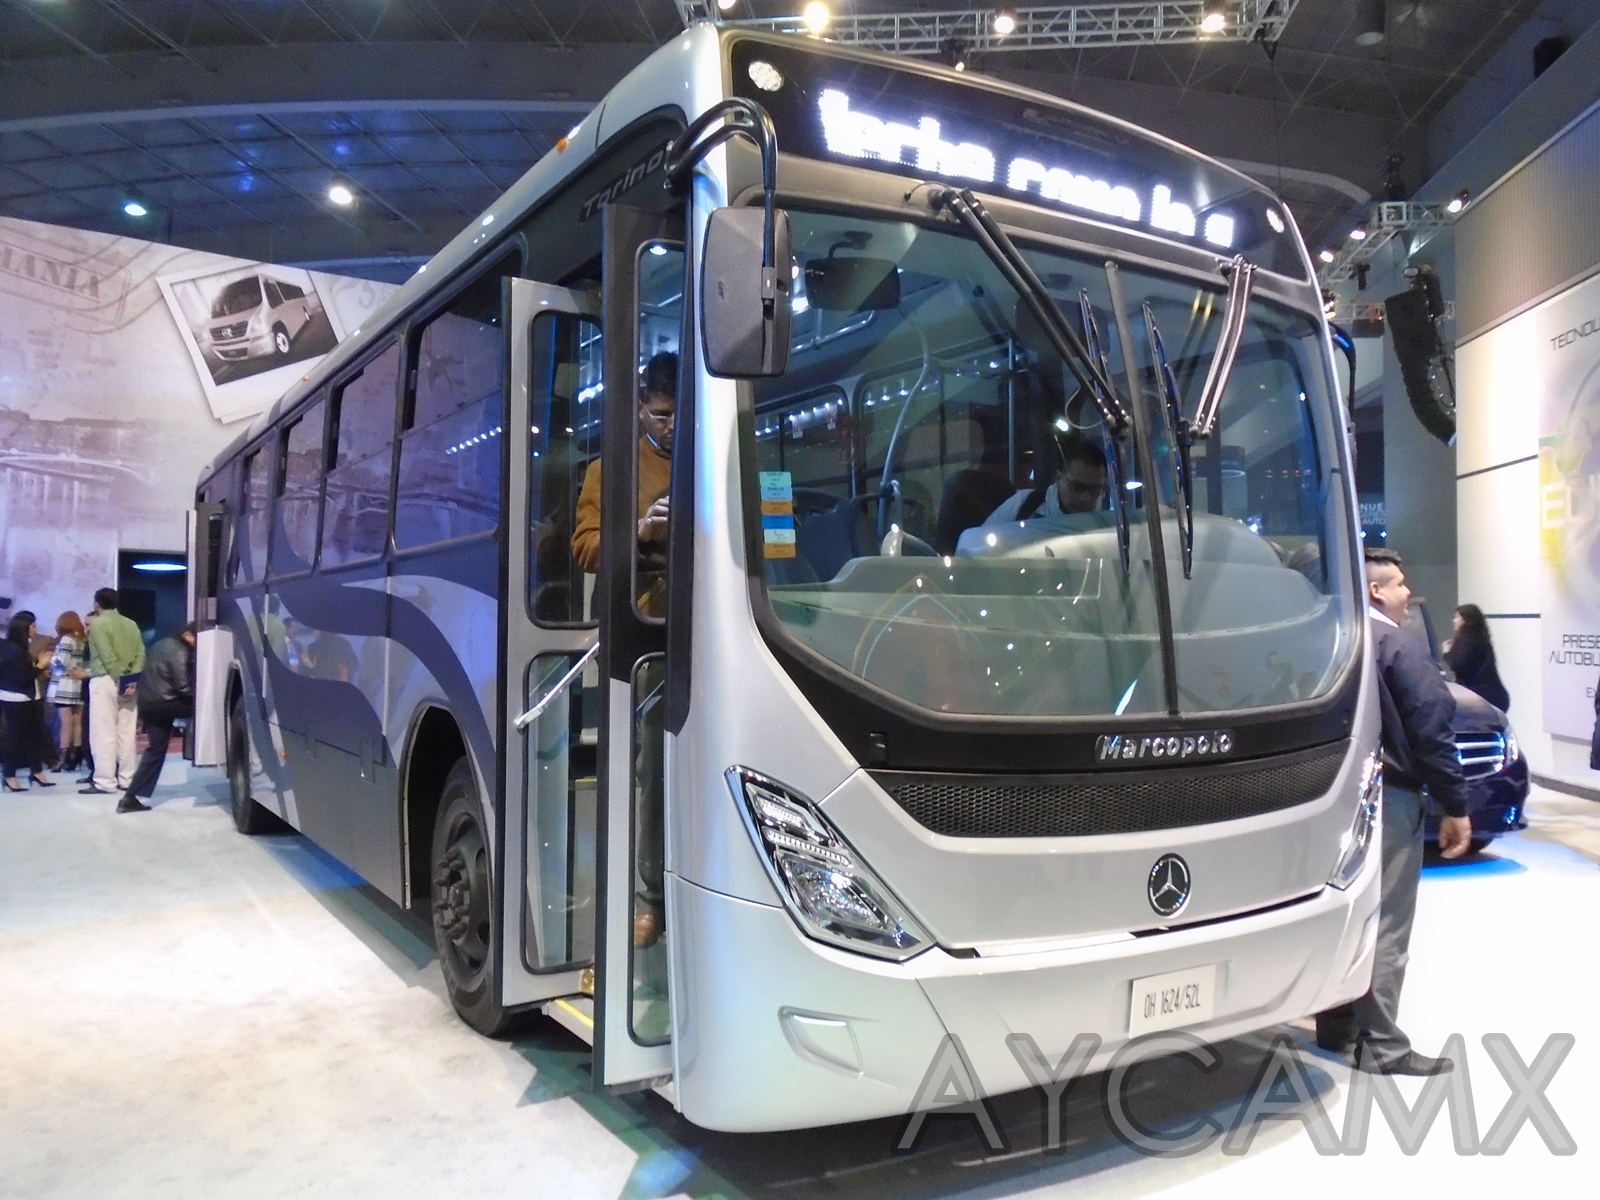 Aycamx autobuses y camiones m xico expo foro 2016 2 for Mercedes benz ohio